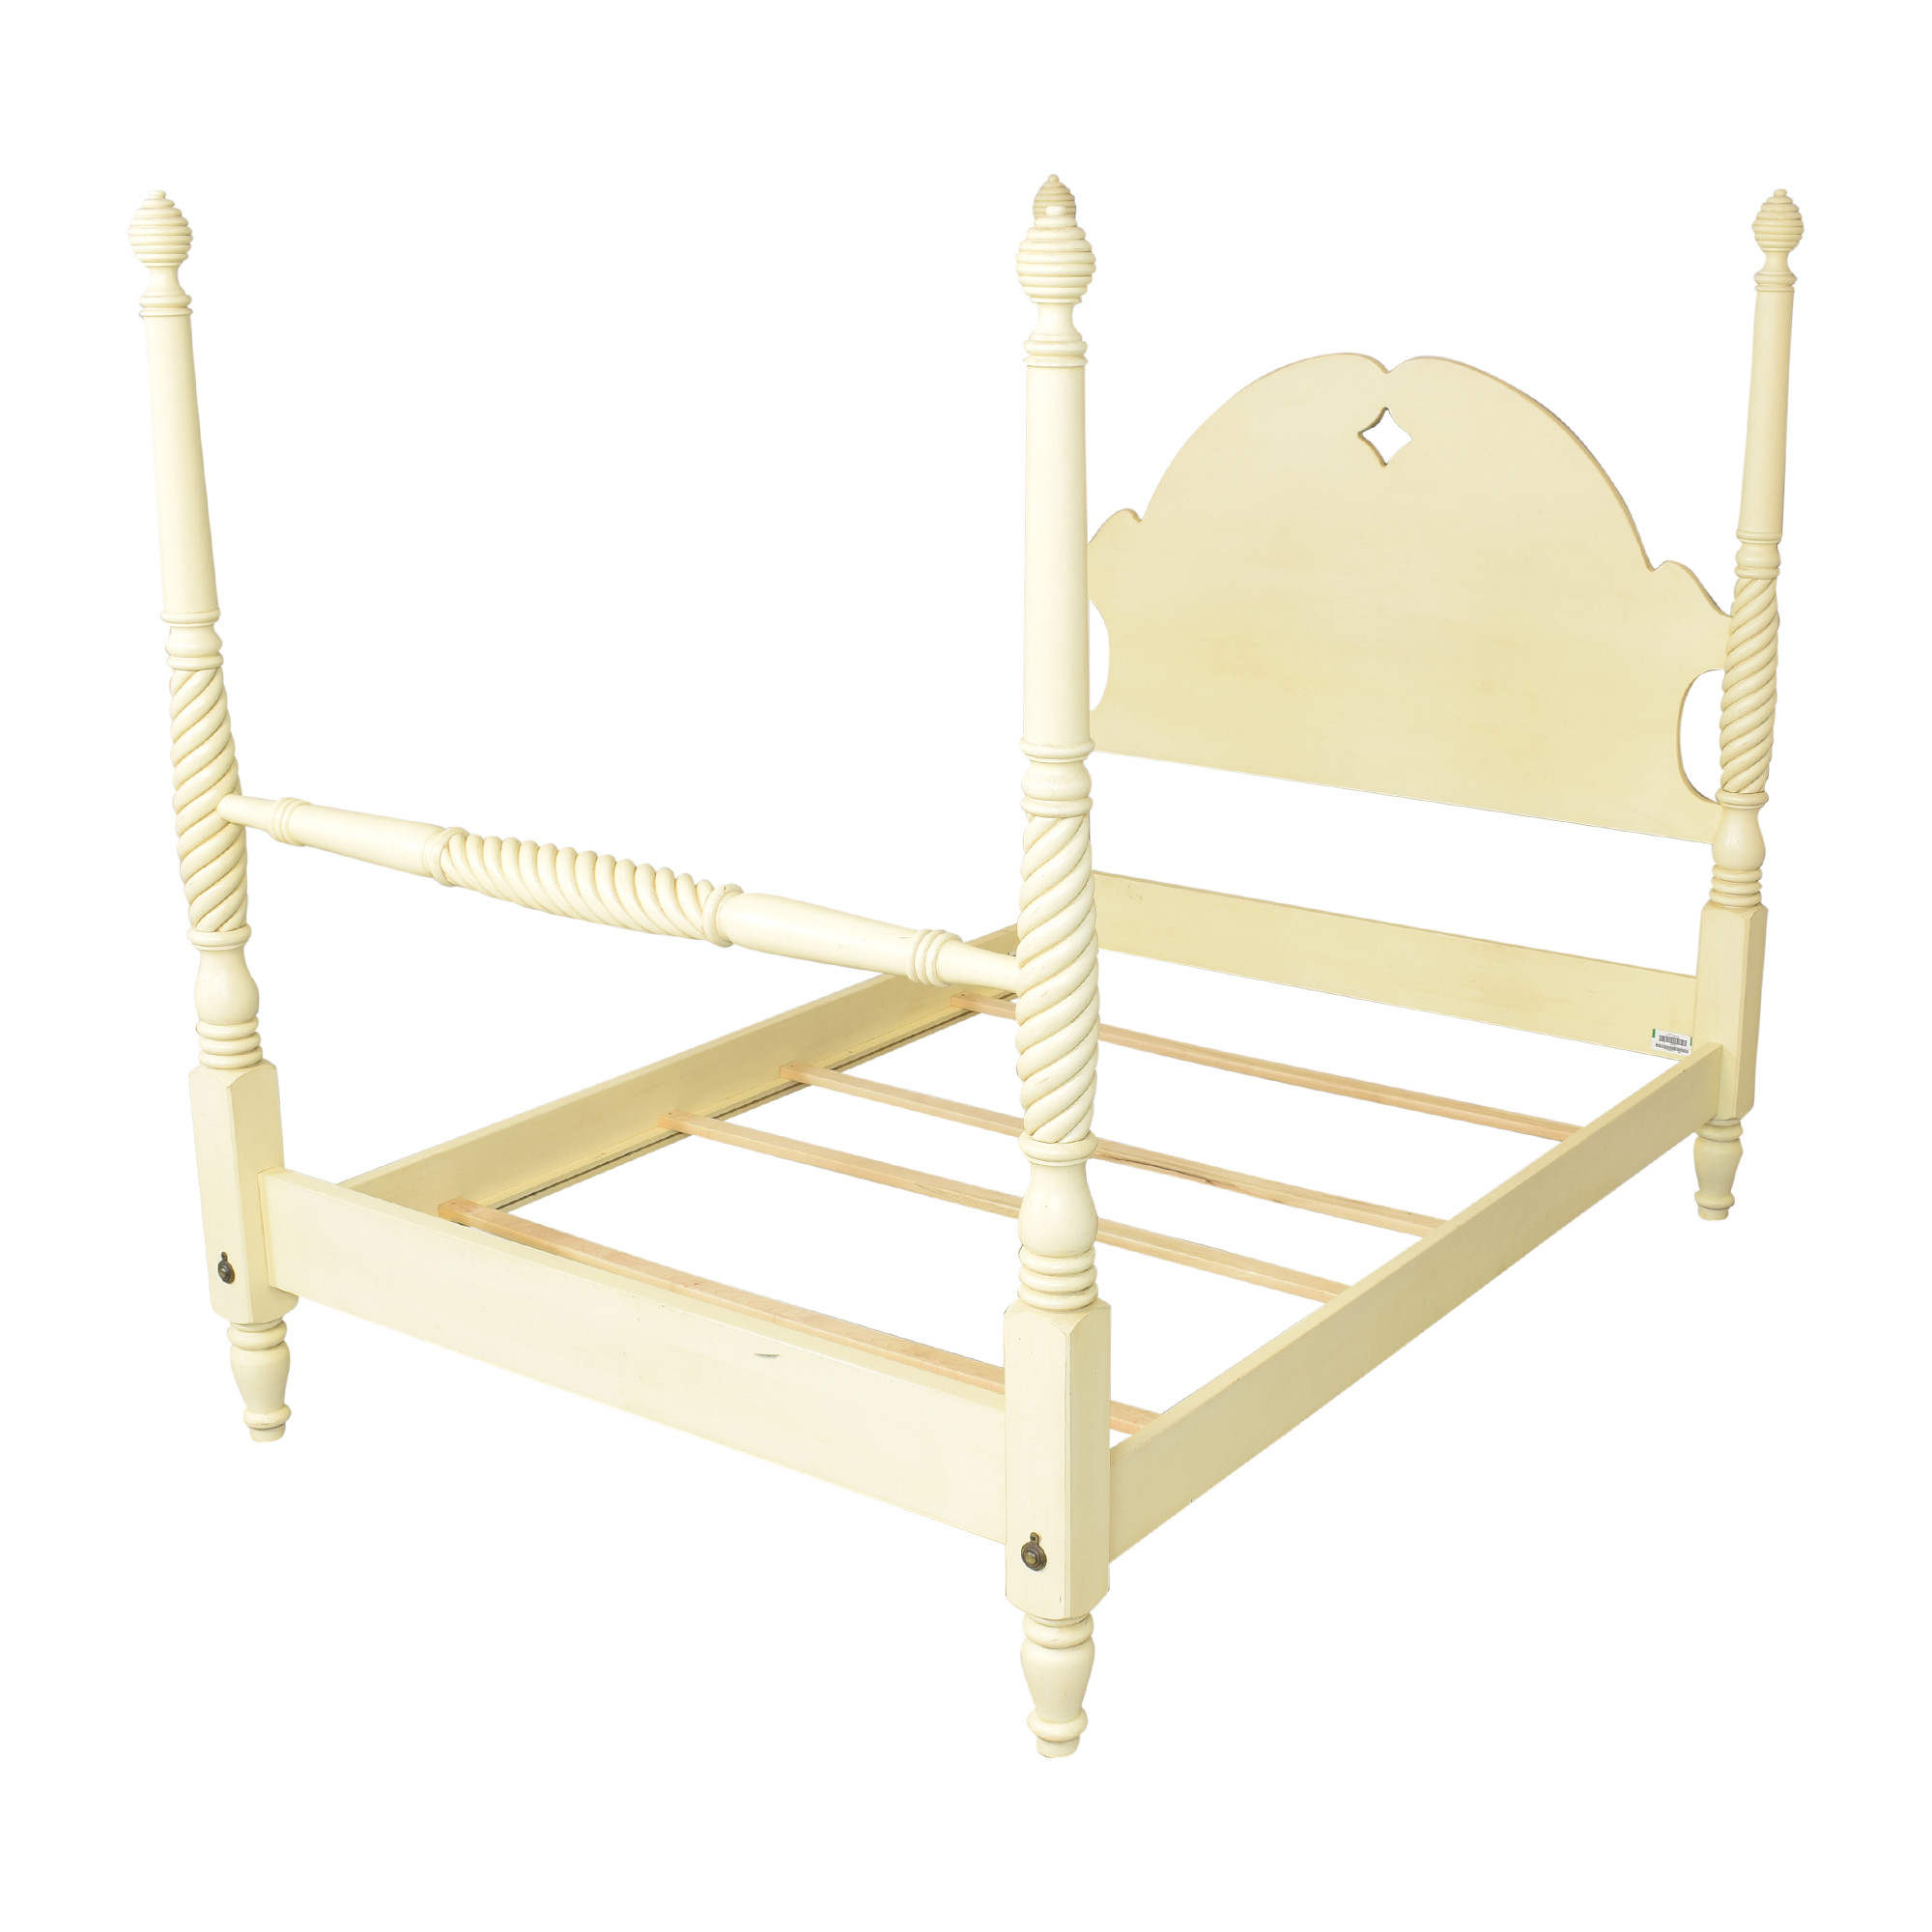 buy Ethan Allen Country Crossings Four Poster Full Bed Ethan Allen Beds